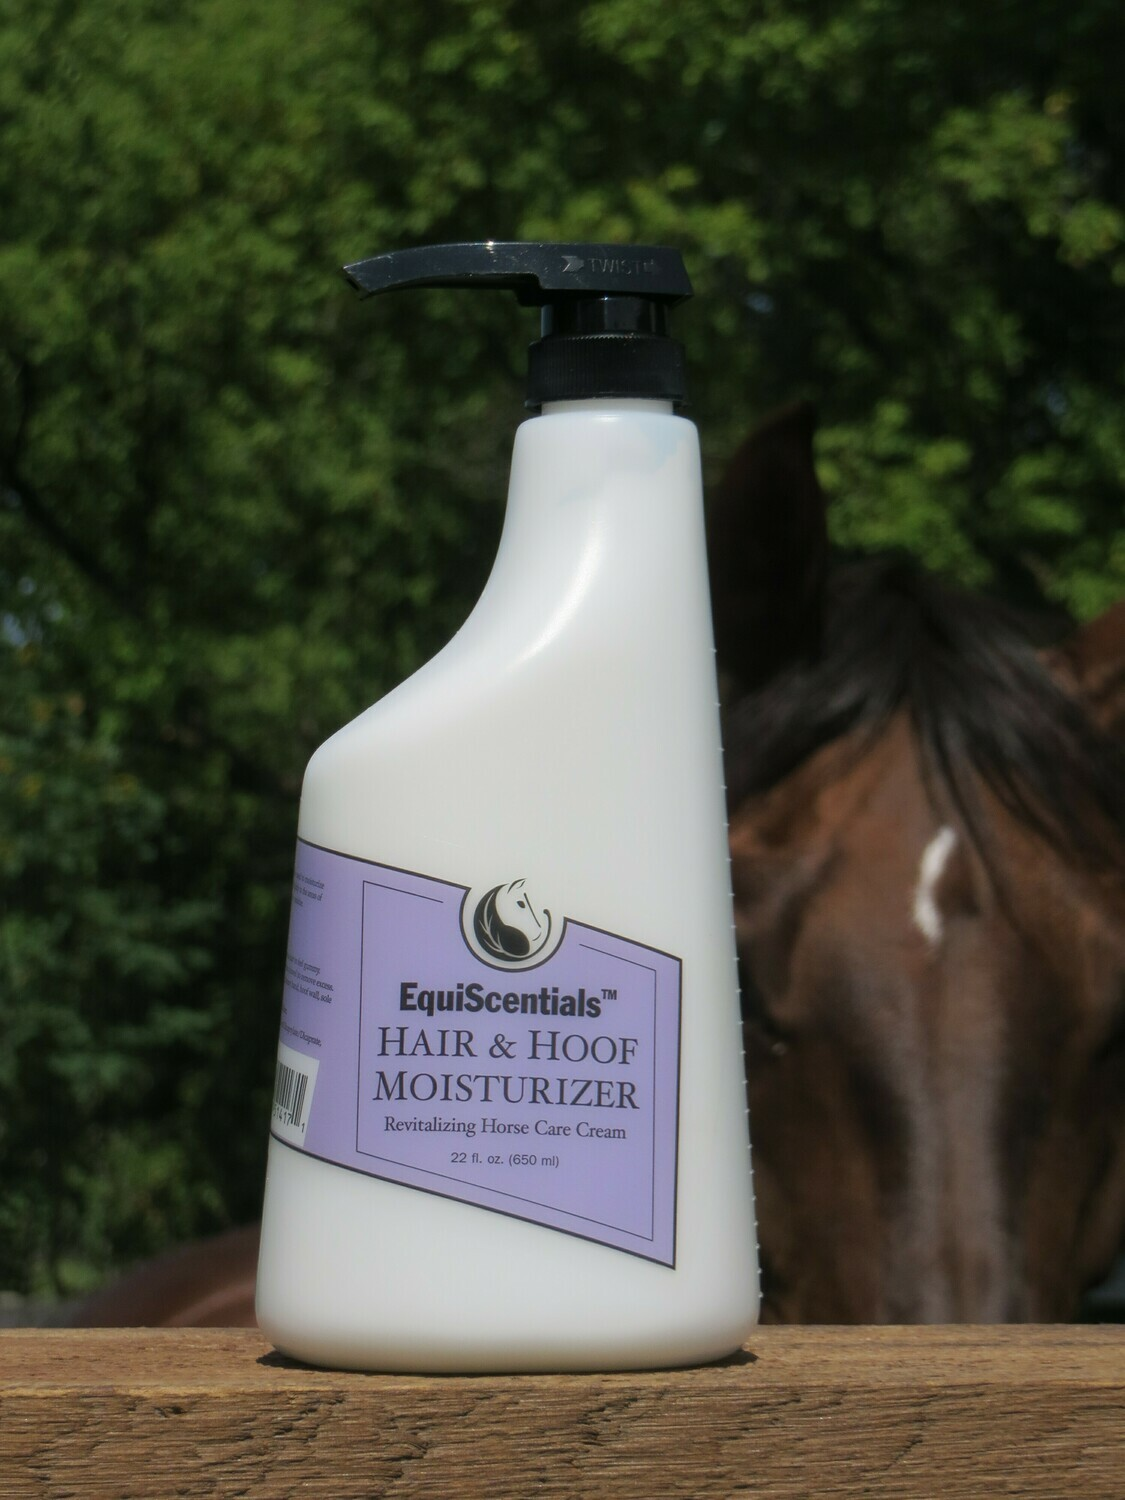 EquiScentials Hair and Hoof Moisturiser - Helps Dry Damaged Hooves and Coat